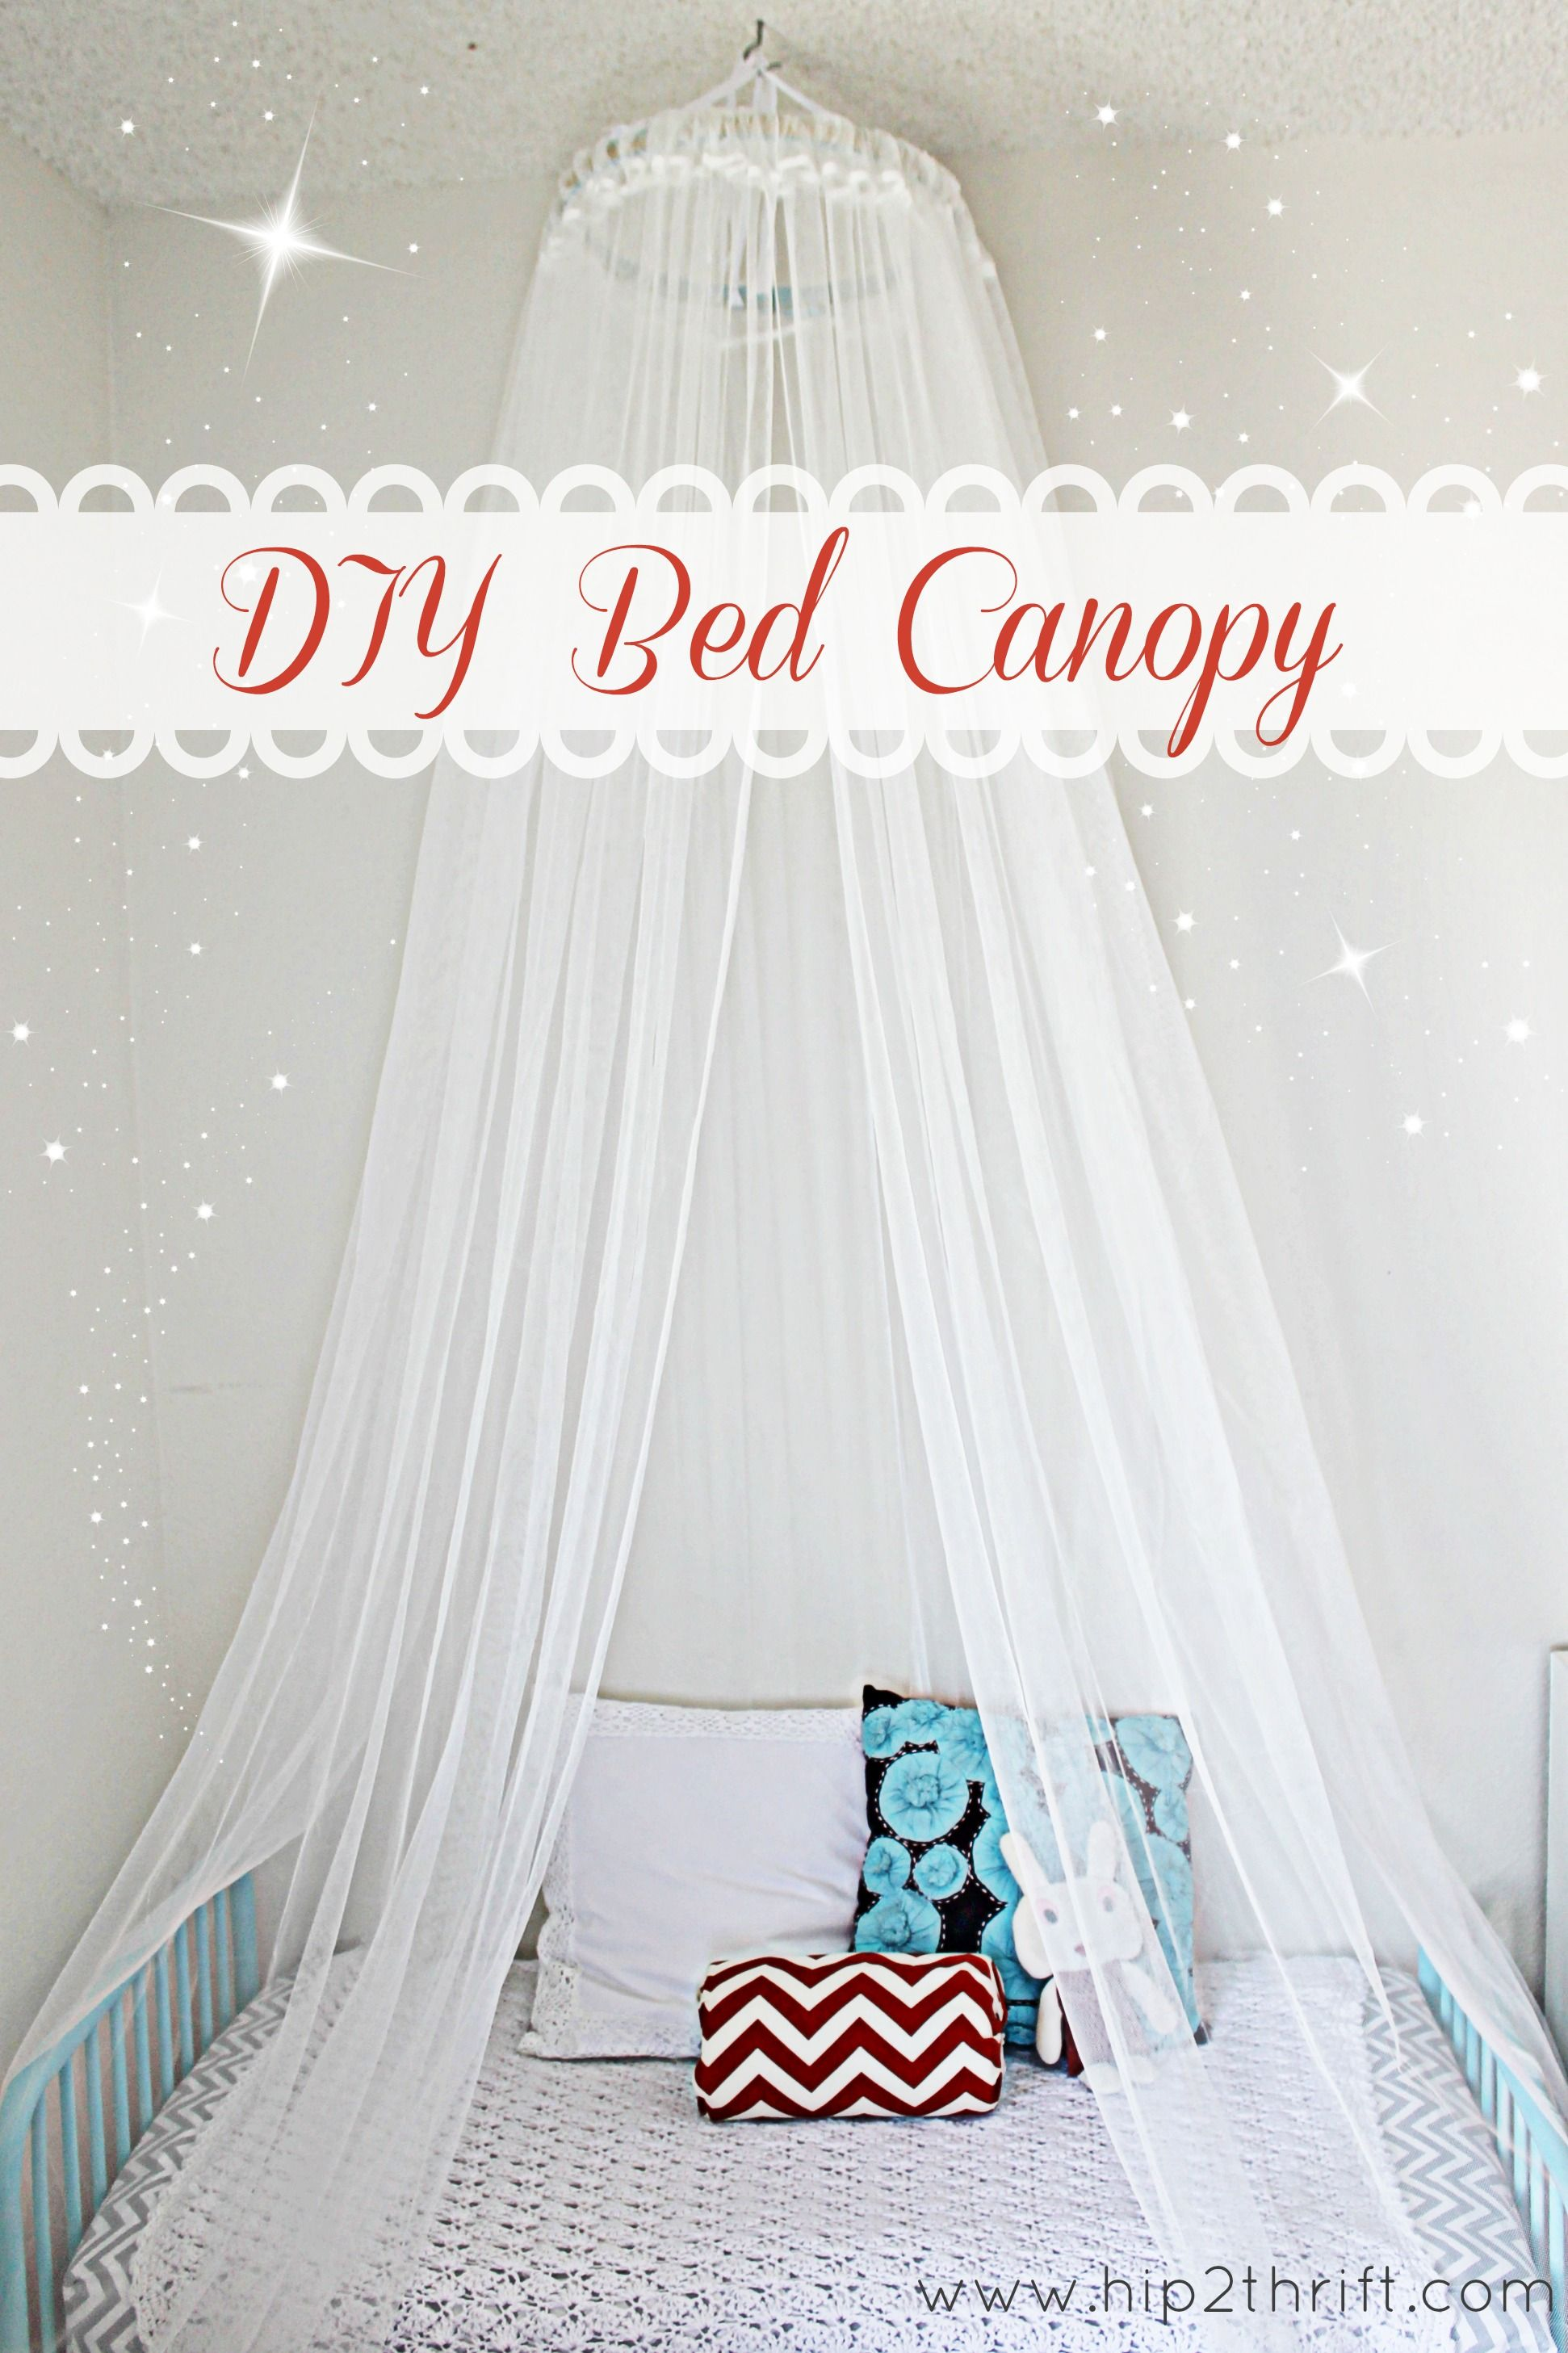 Princess Bed Blueprints How To Make A Bed Canopy Bed Canopies And Canopy